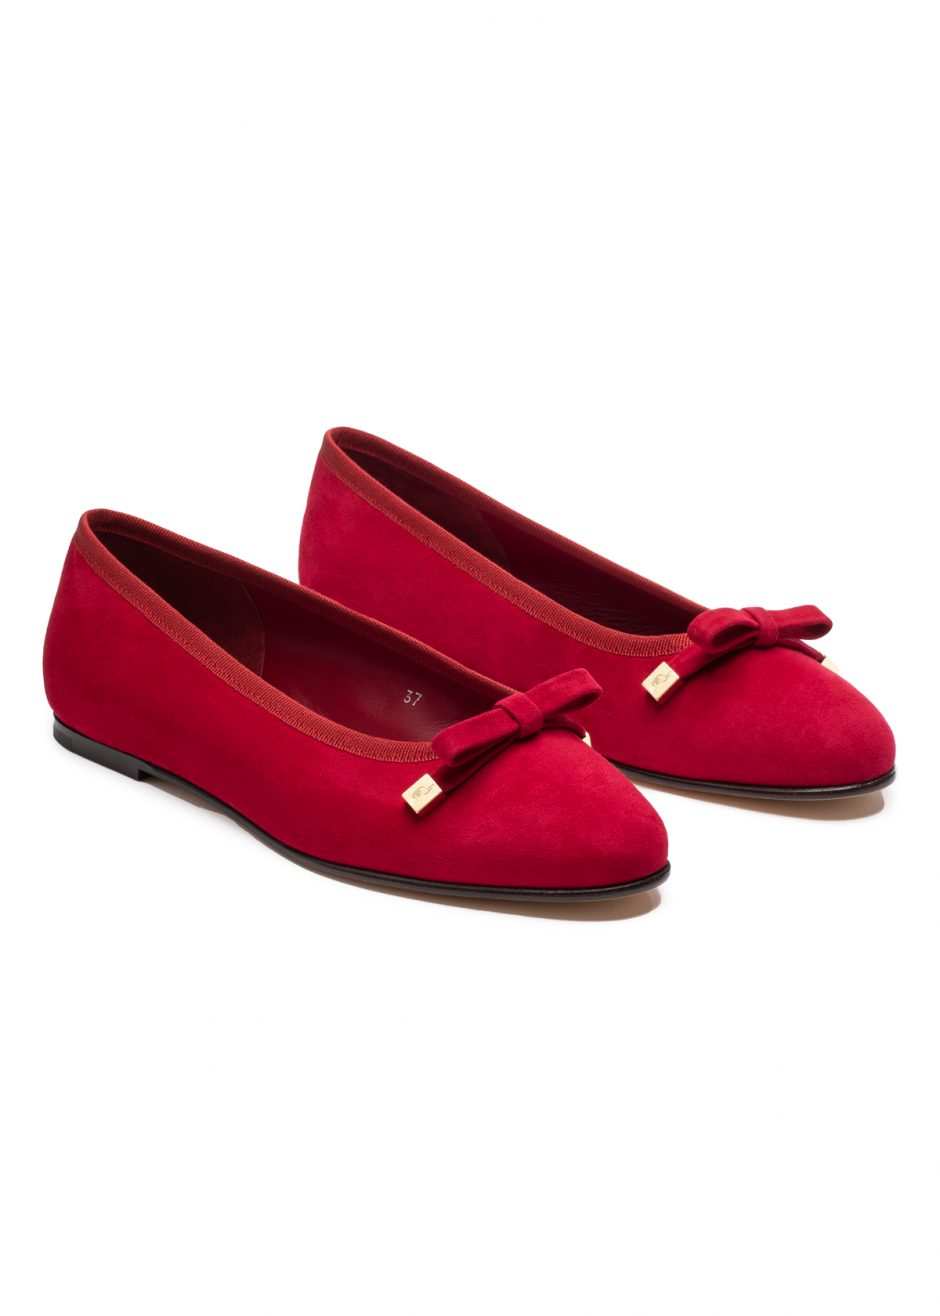 Audrey – Ballet flat red kidskin suede with suede bow